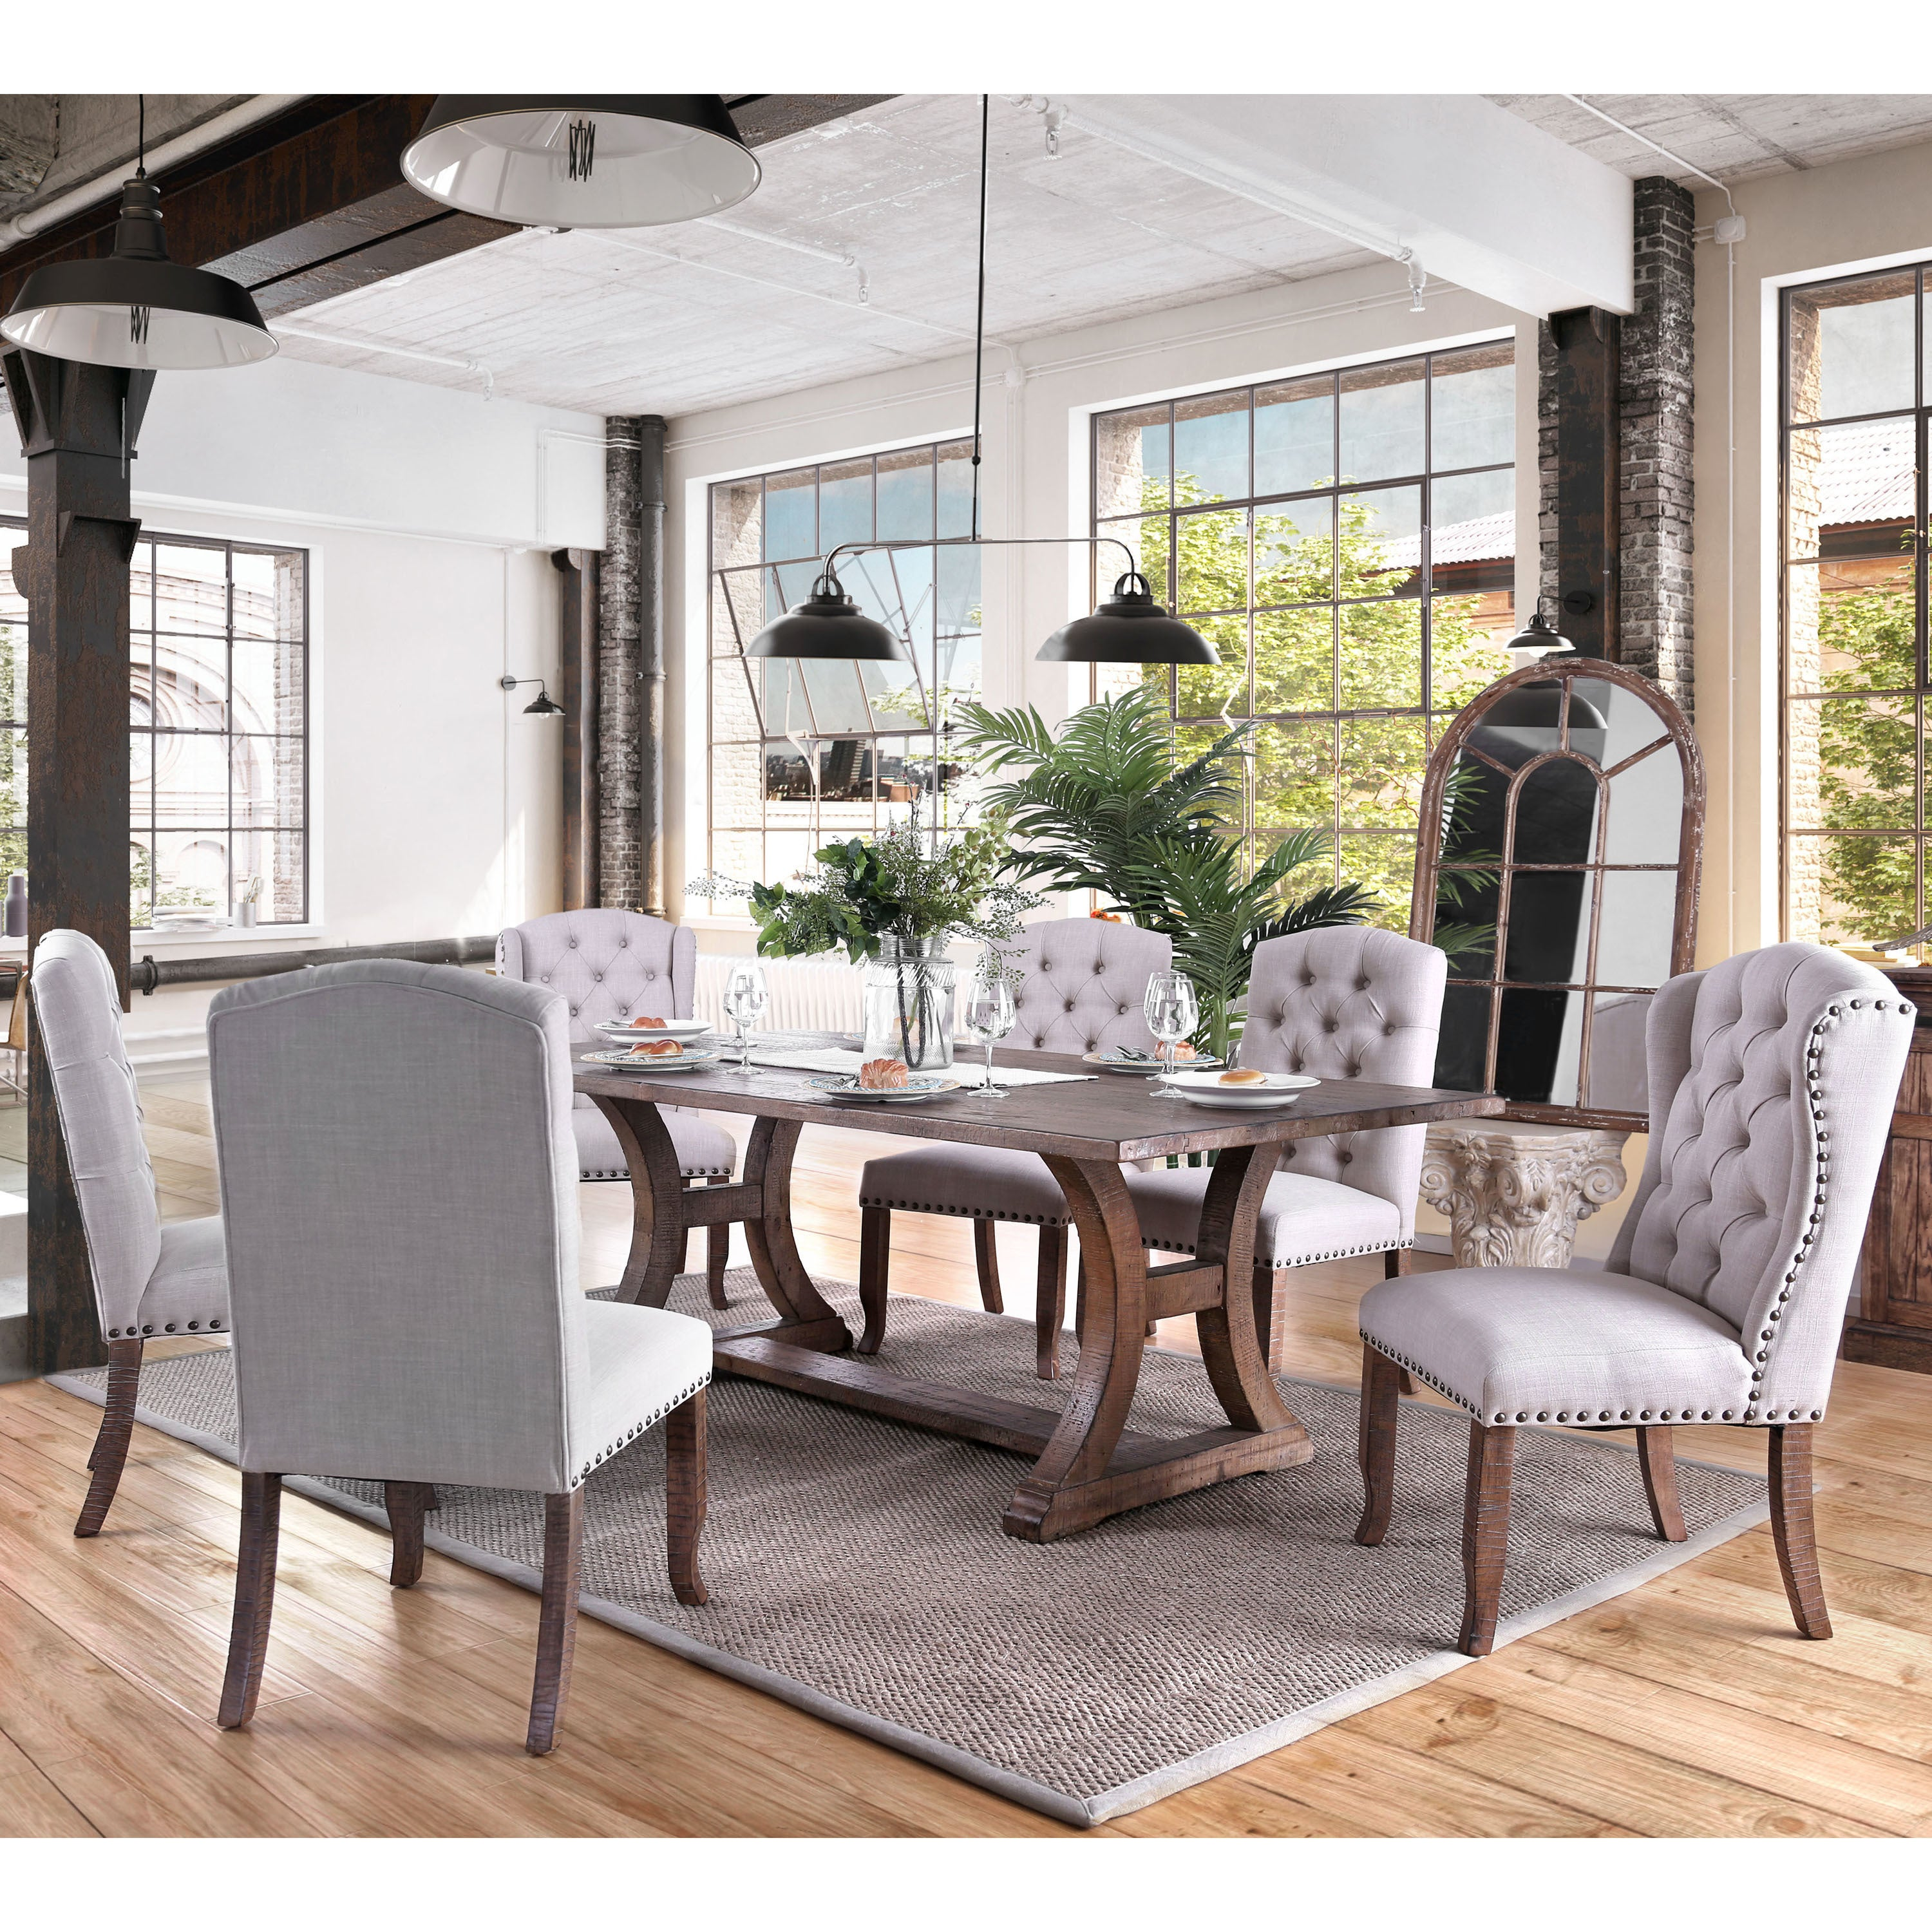 Captivating Furniture Of America Matheson Rustic Tufted Dining Chairs (Set Of 2)   Free  Shipping Today   Overstock   26120439